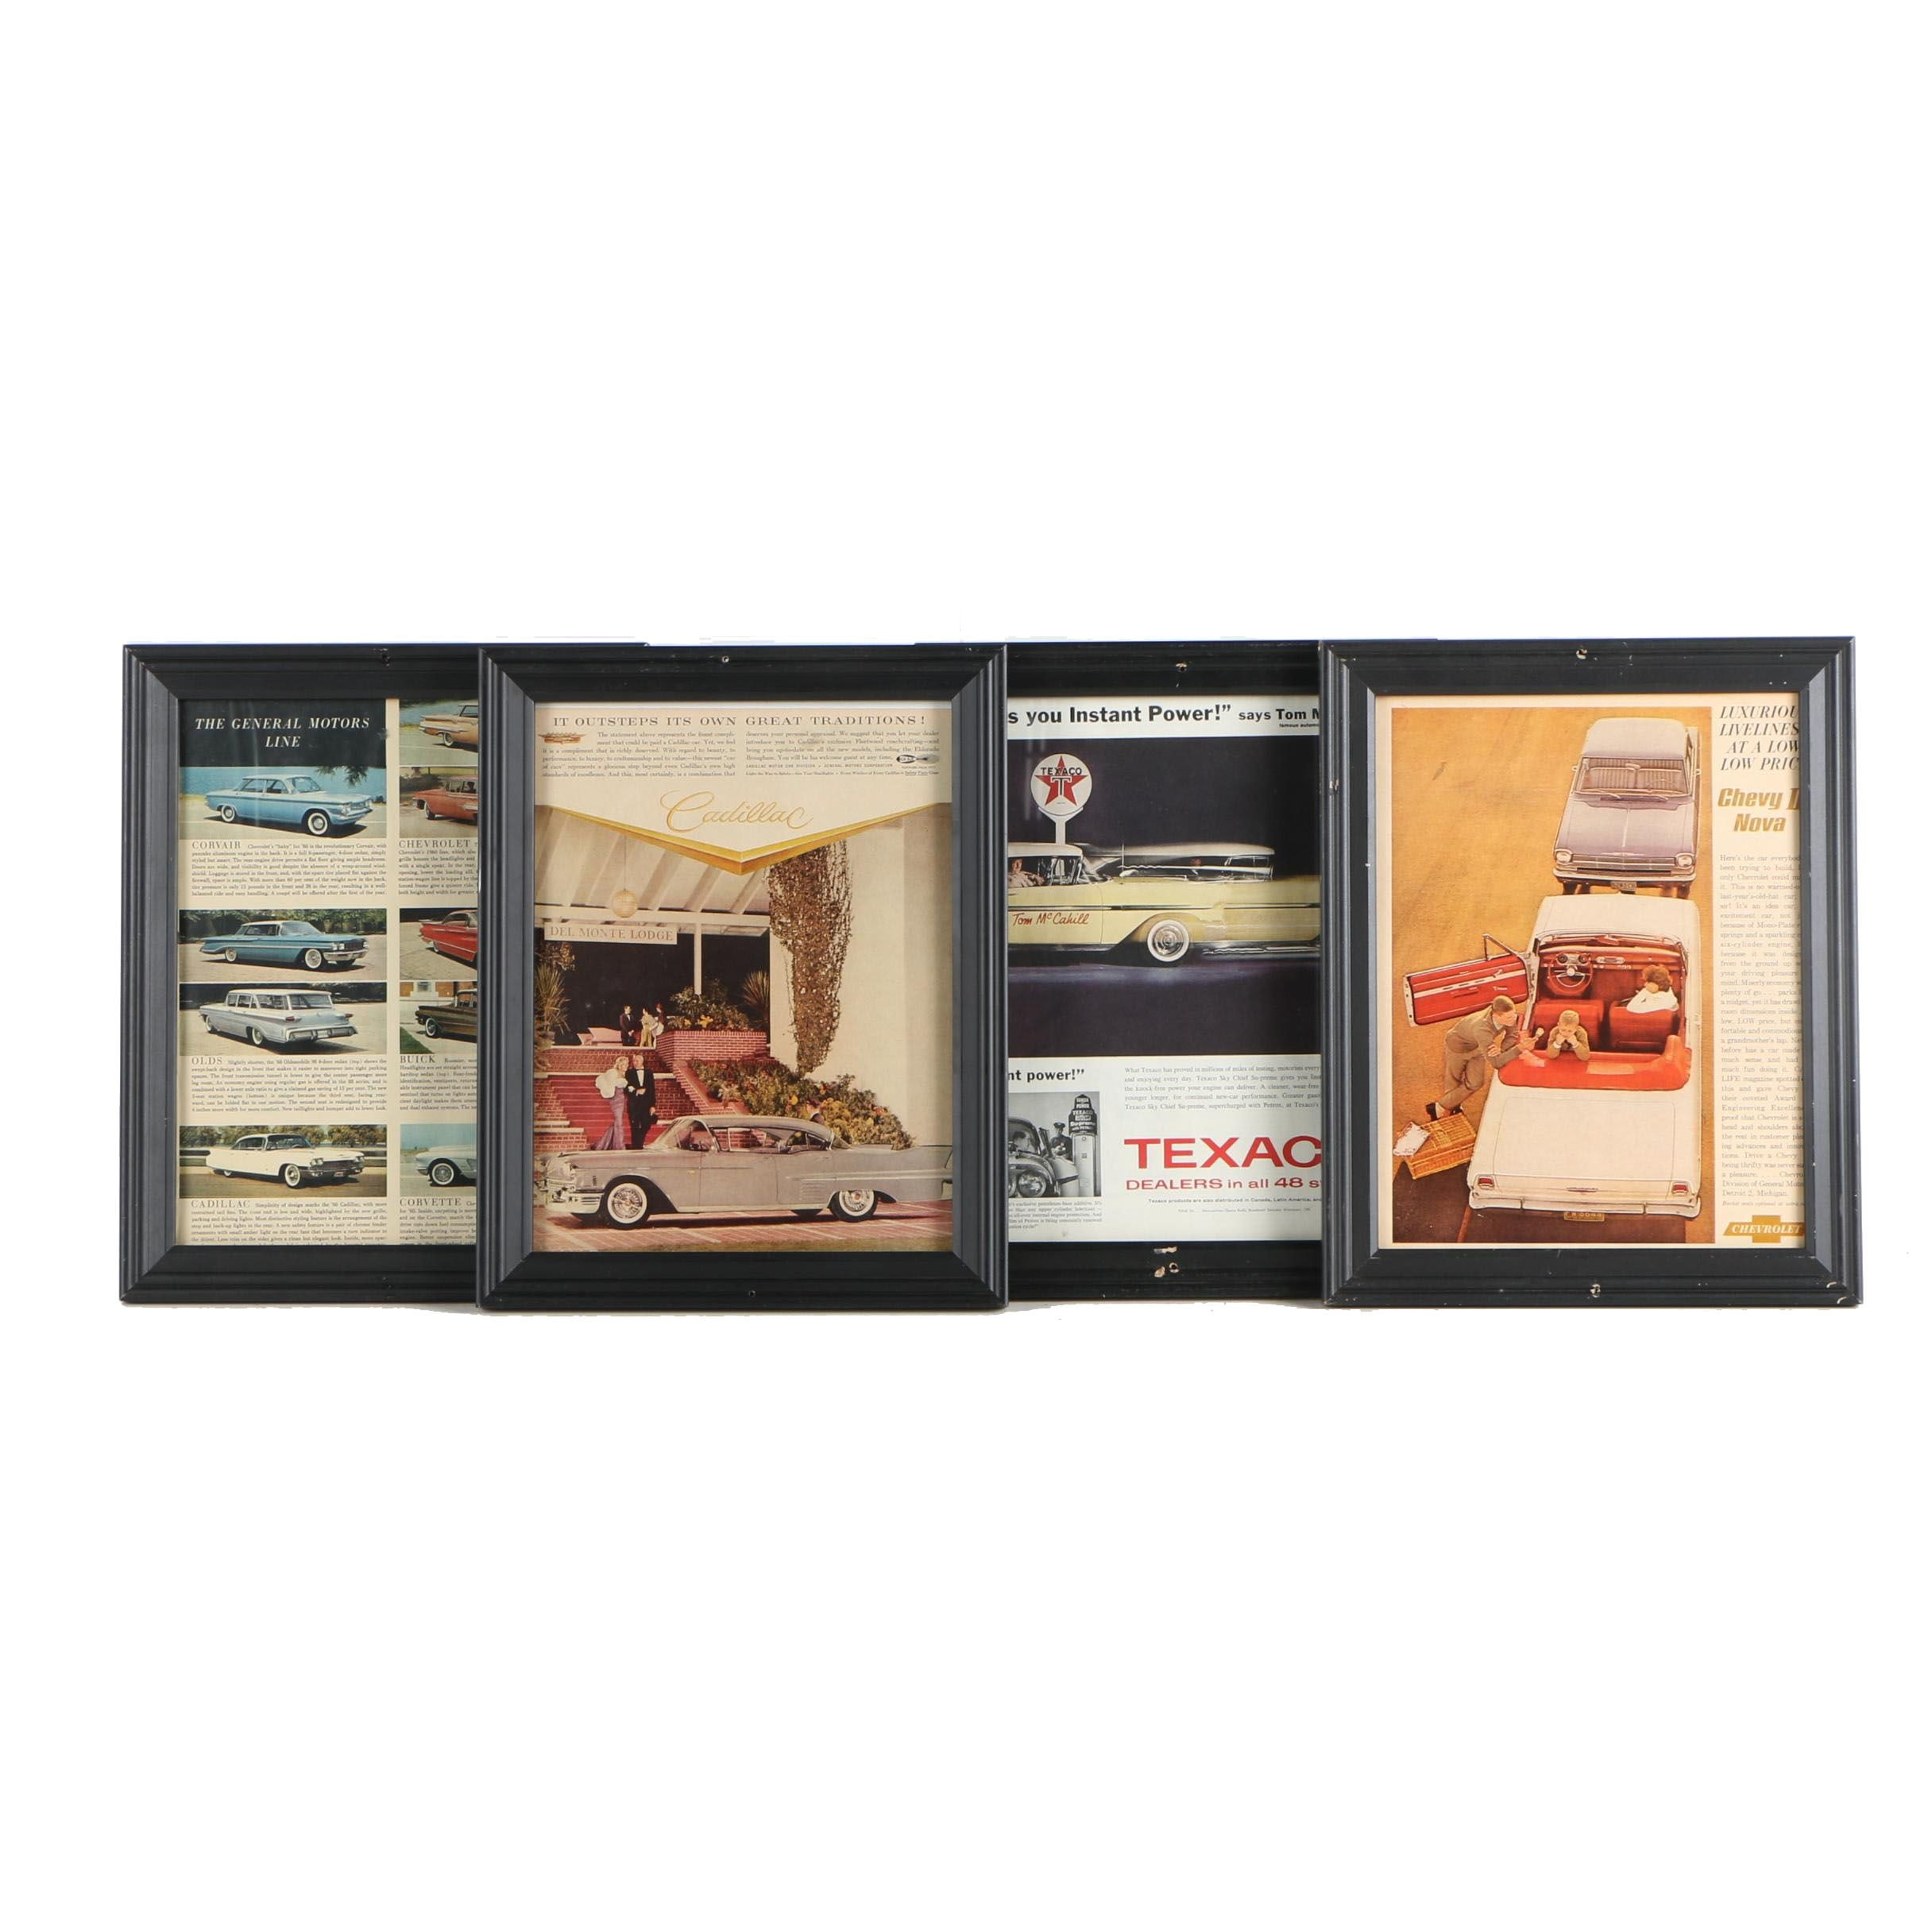 Four Offset Lithograph Magazine Advertisements for Mid Century Automobiles